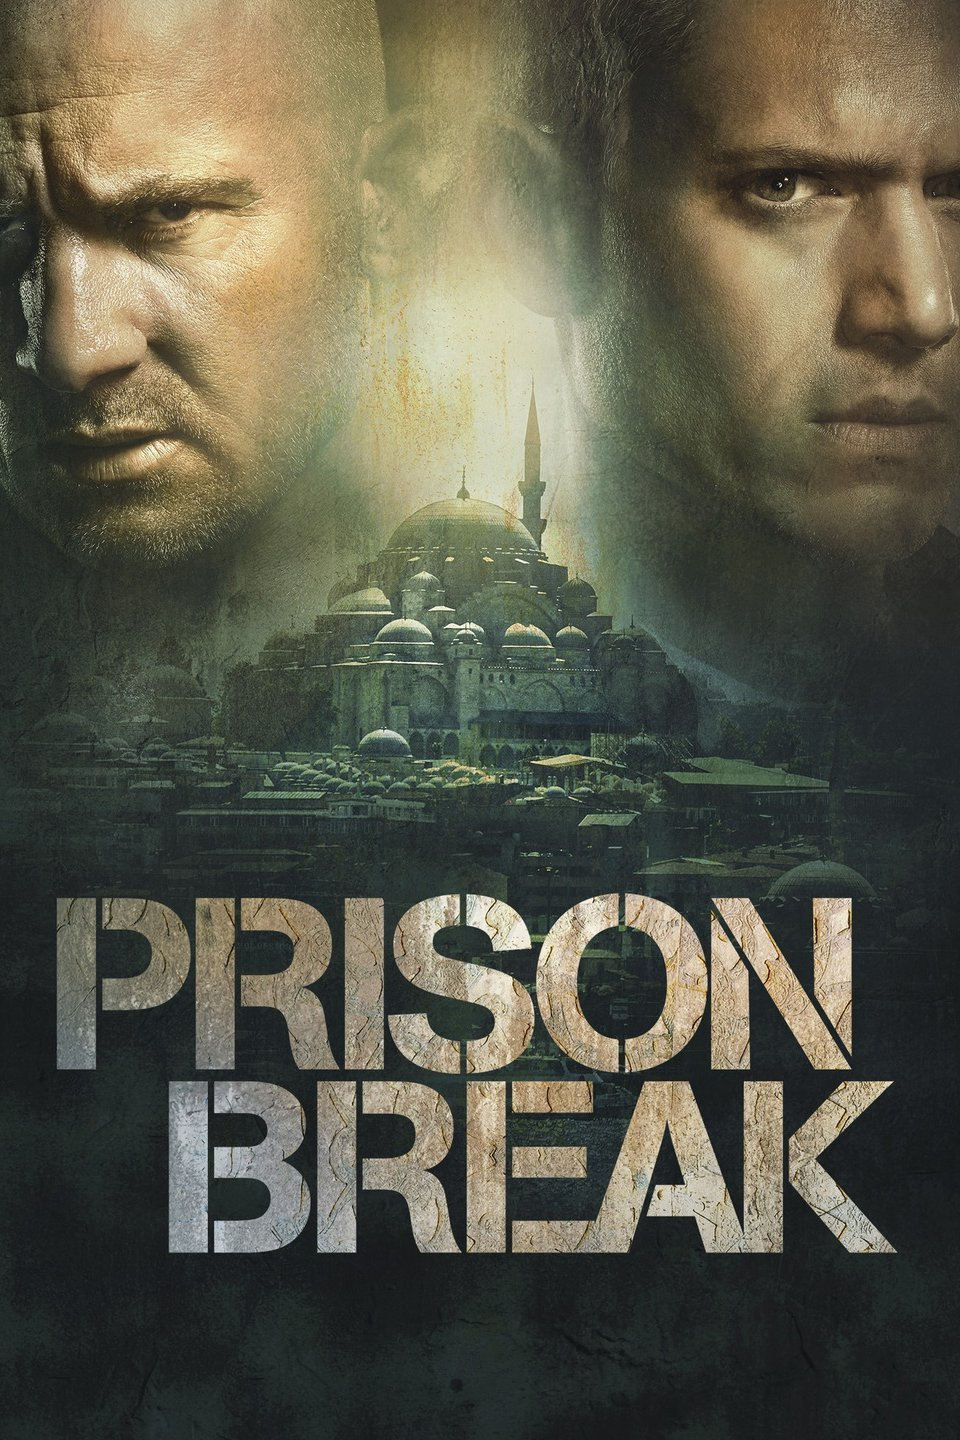 Prison Break Season 5 Episode 6 Download 480p WEB-DL 150MB